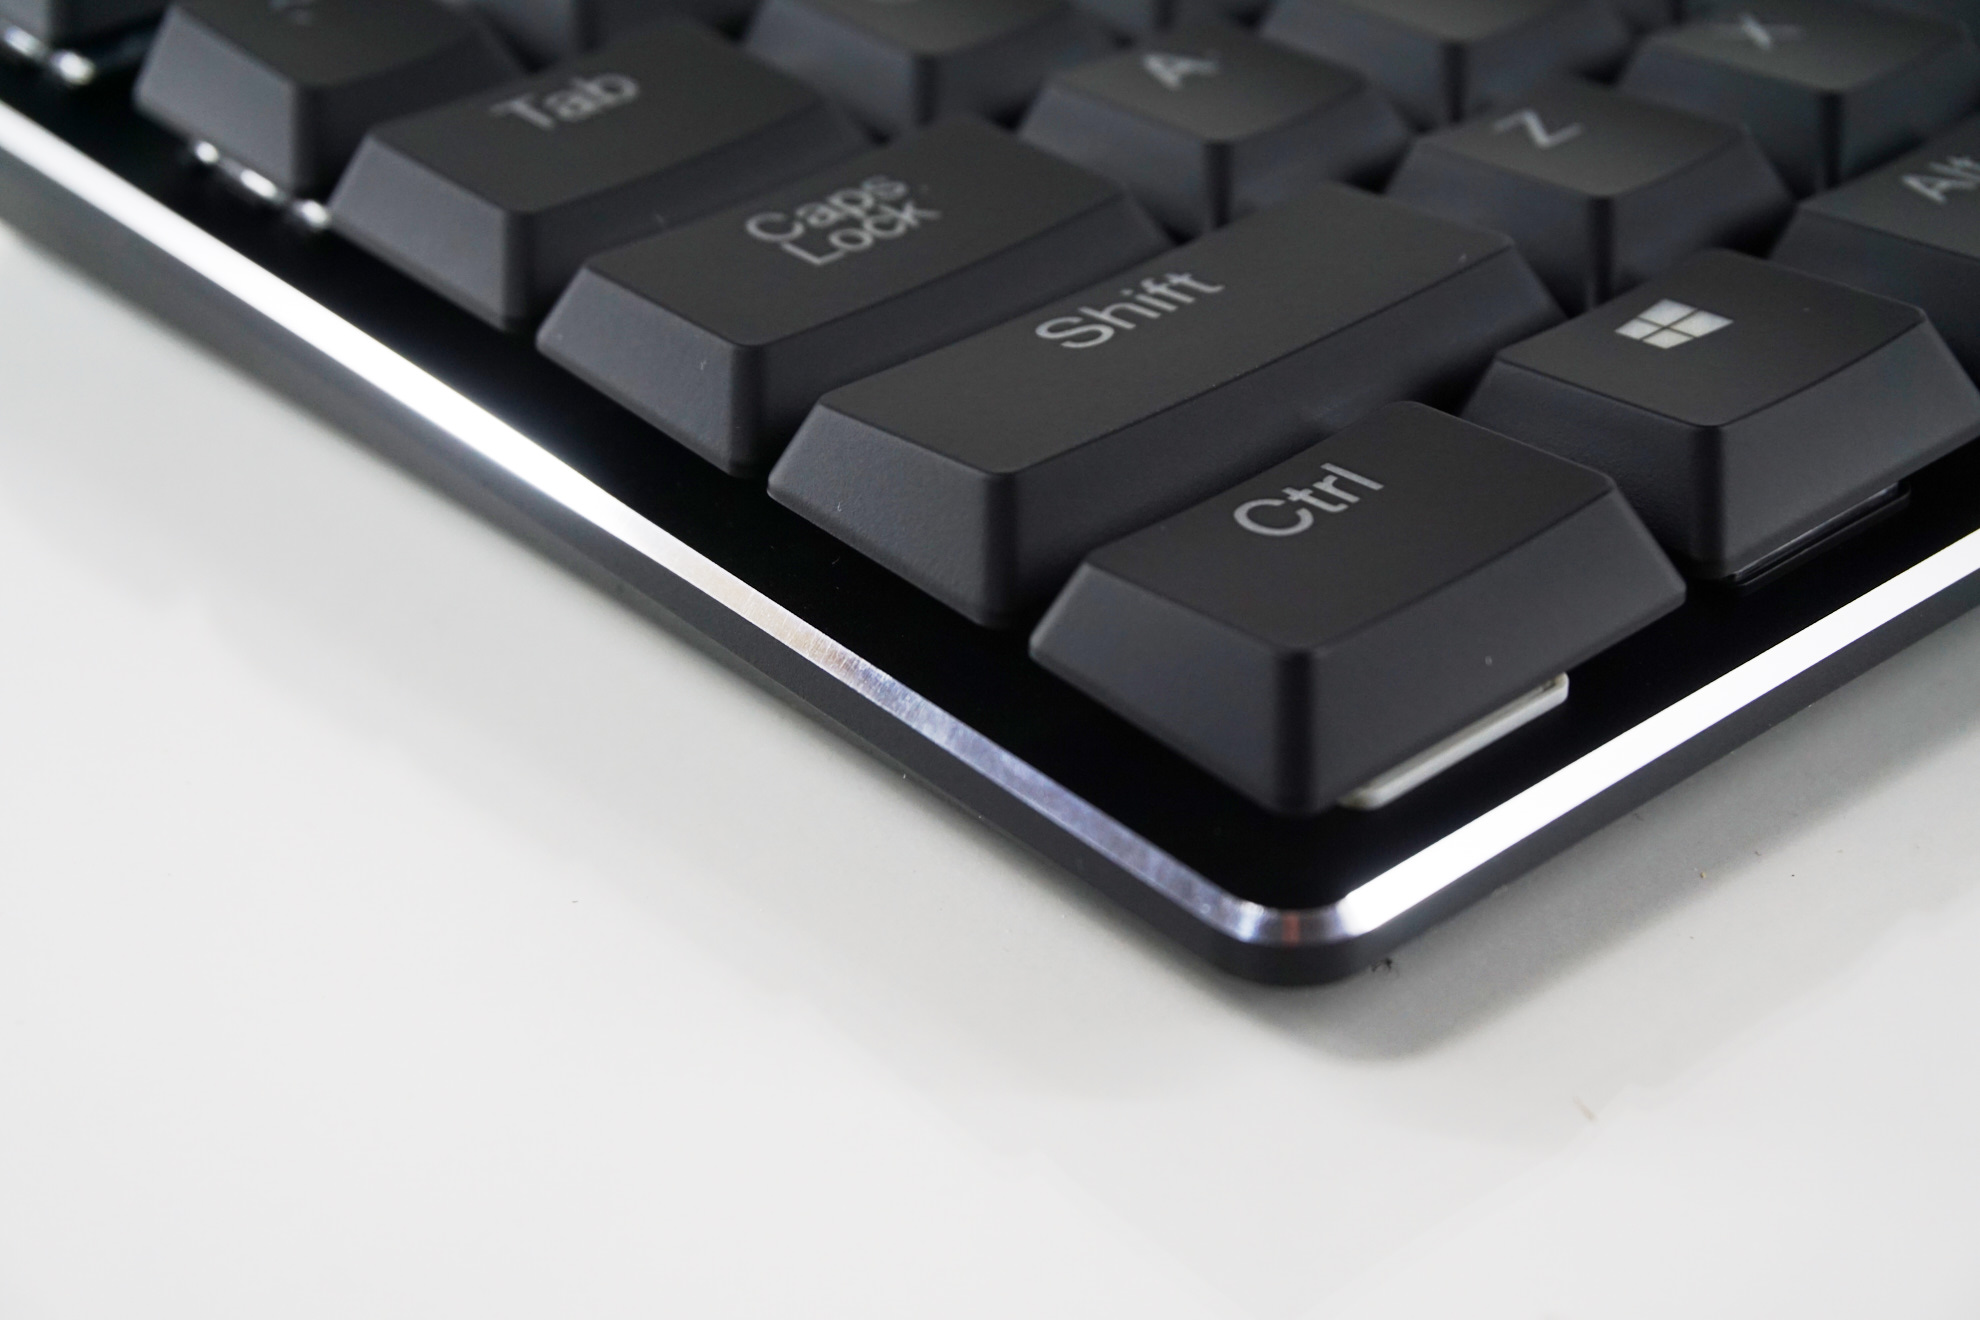 d1d7b1bc545 It is a standard 104 keys keyboard that fully adheres to the ANSI layout.  The bottom row of the keyboard has a 6.25× ...